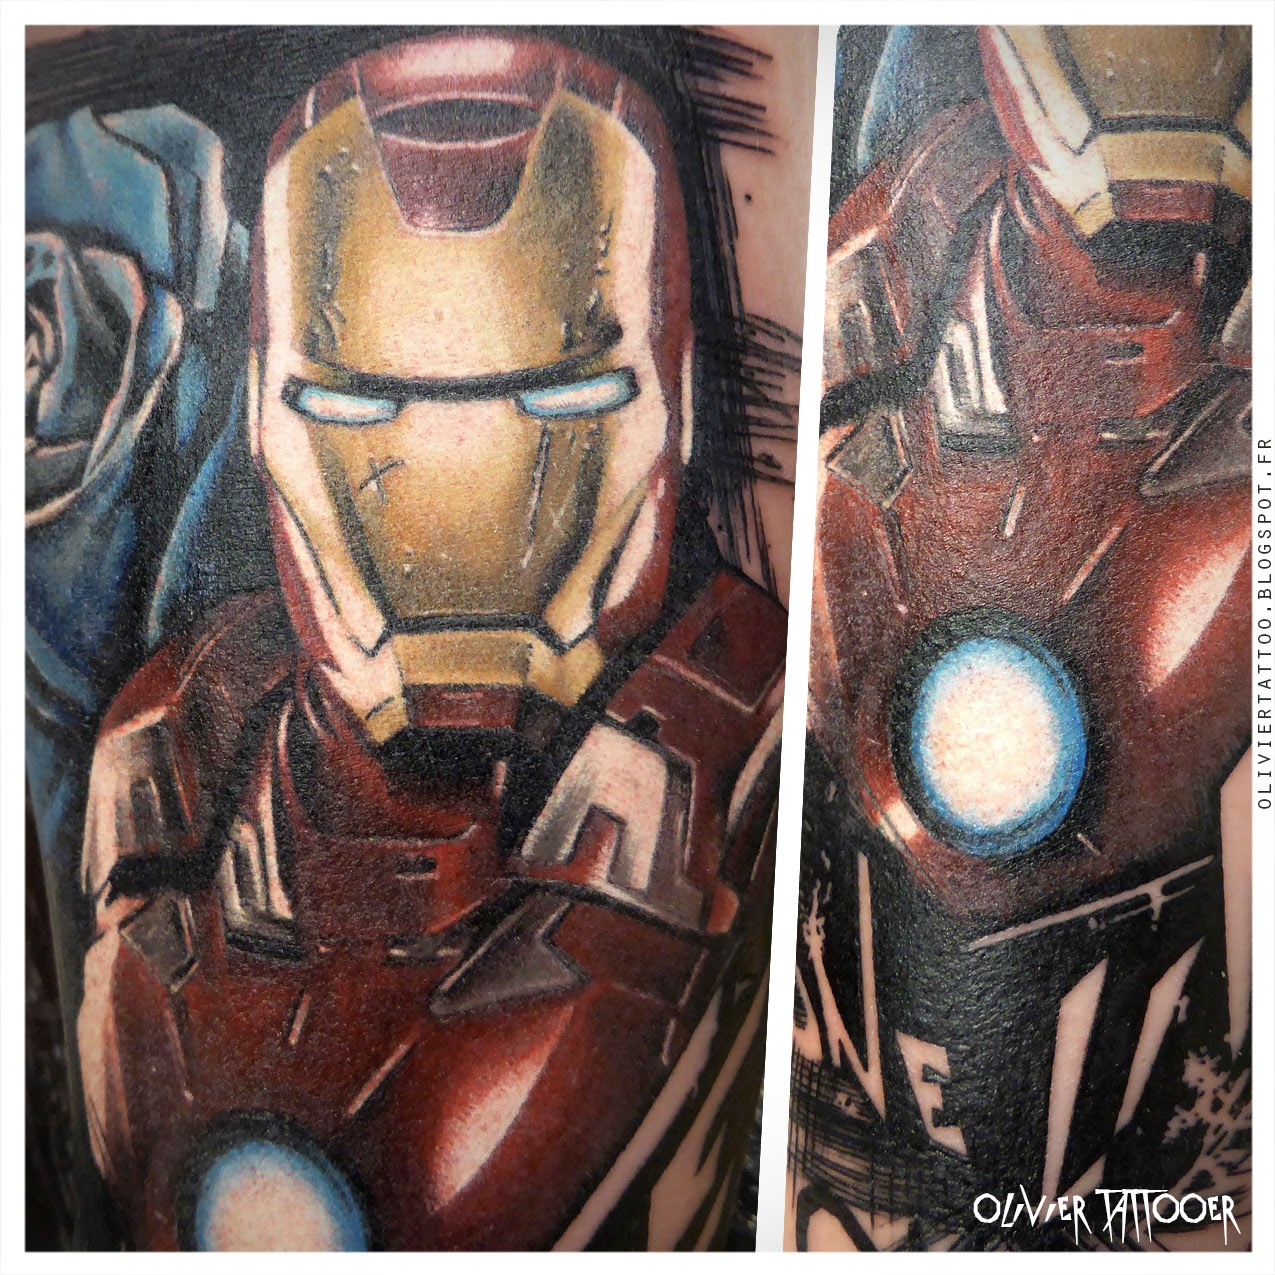 ironman_iron-man_tatouage_tattoo_colored-tattoo_olivier-tattooer_tatoueur_realiste_tatouage_ironman_clermont-ferrand_auvergne_poinsignon